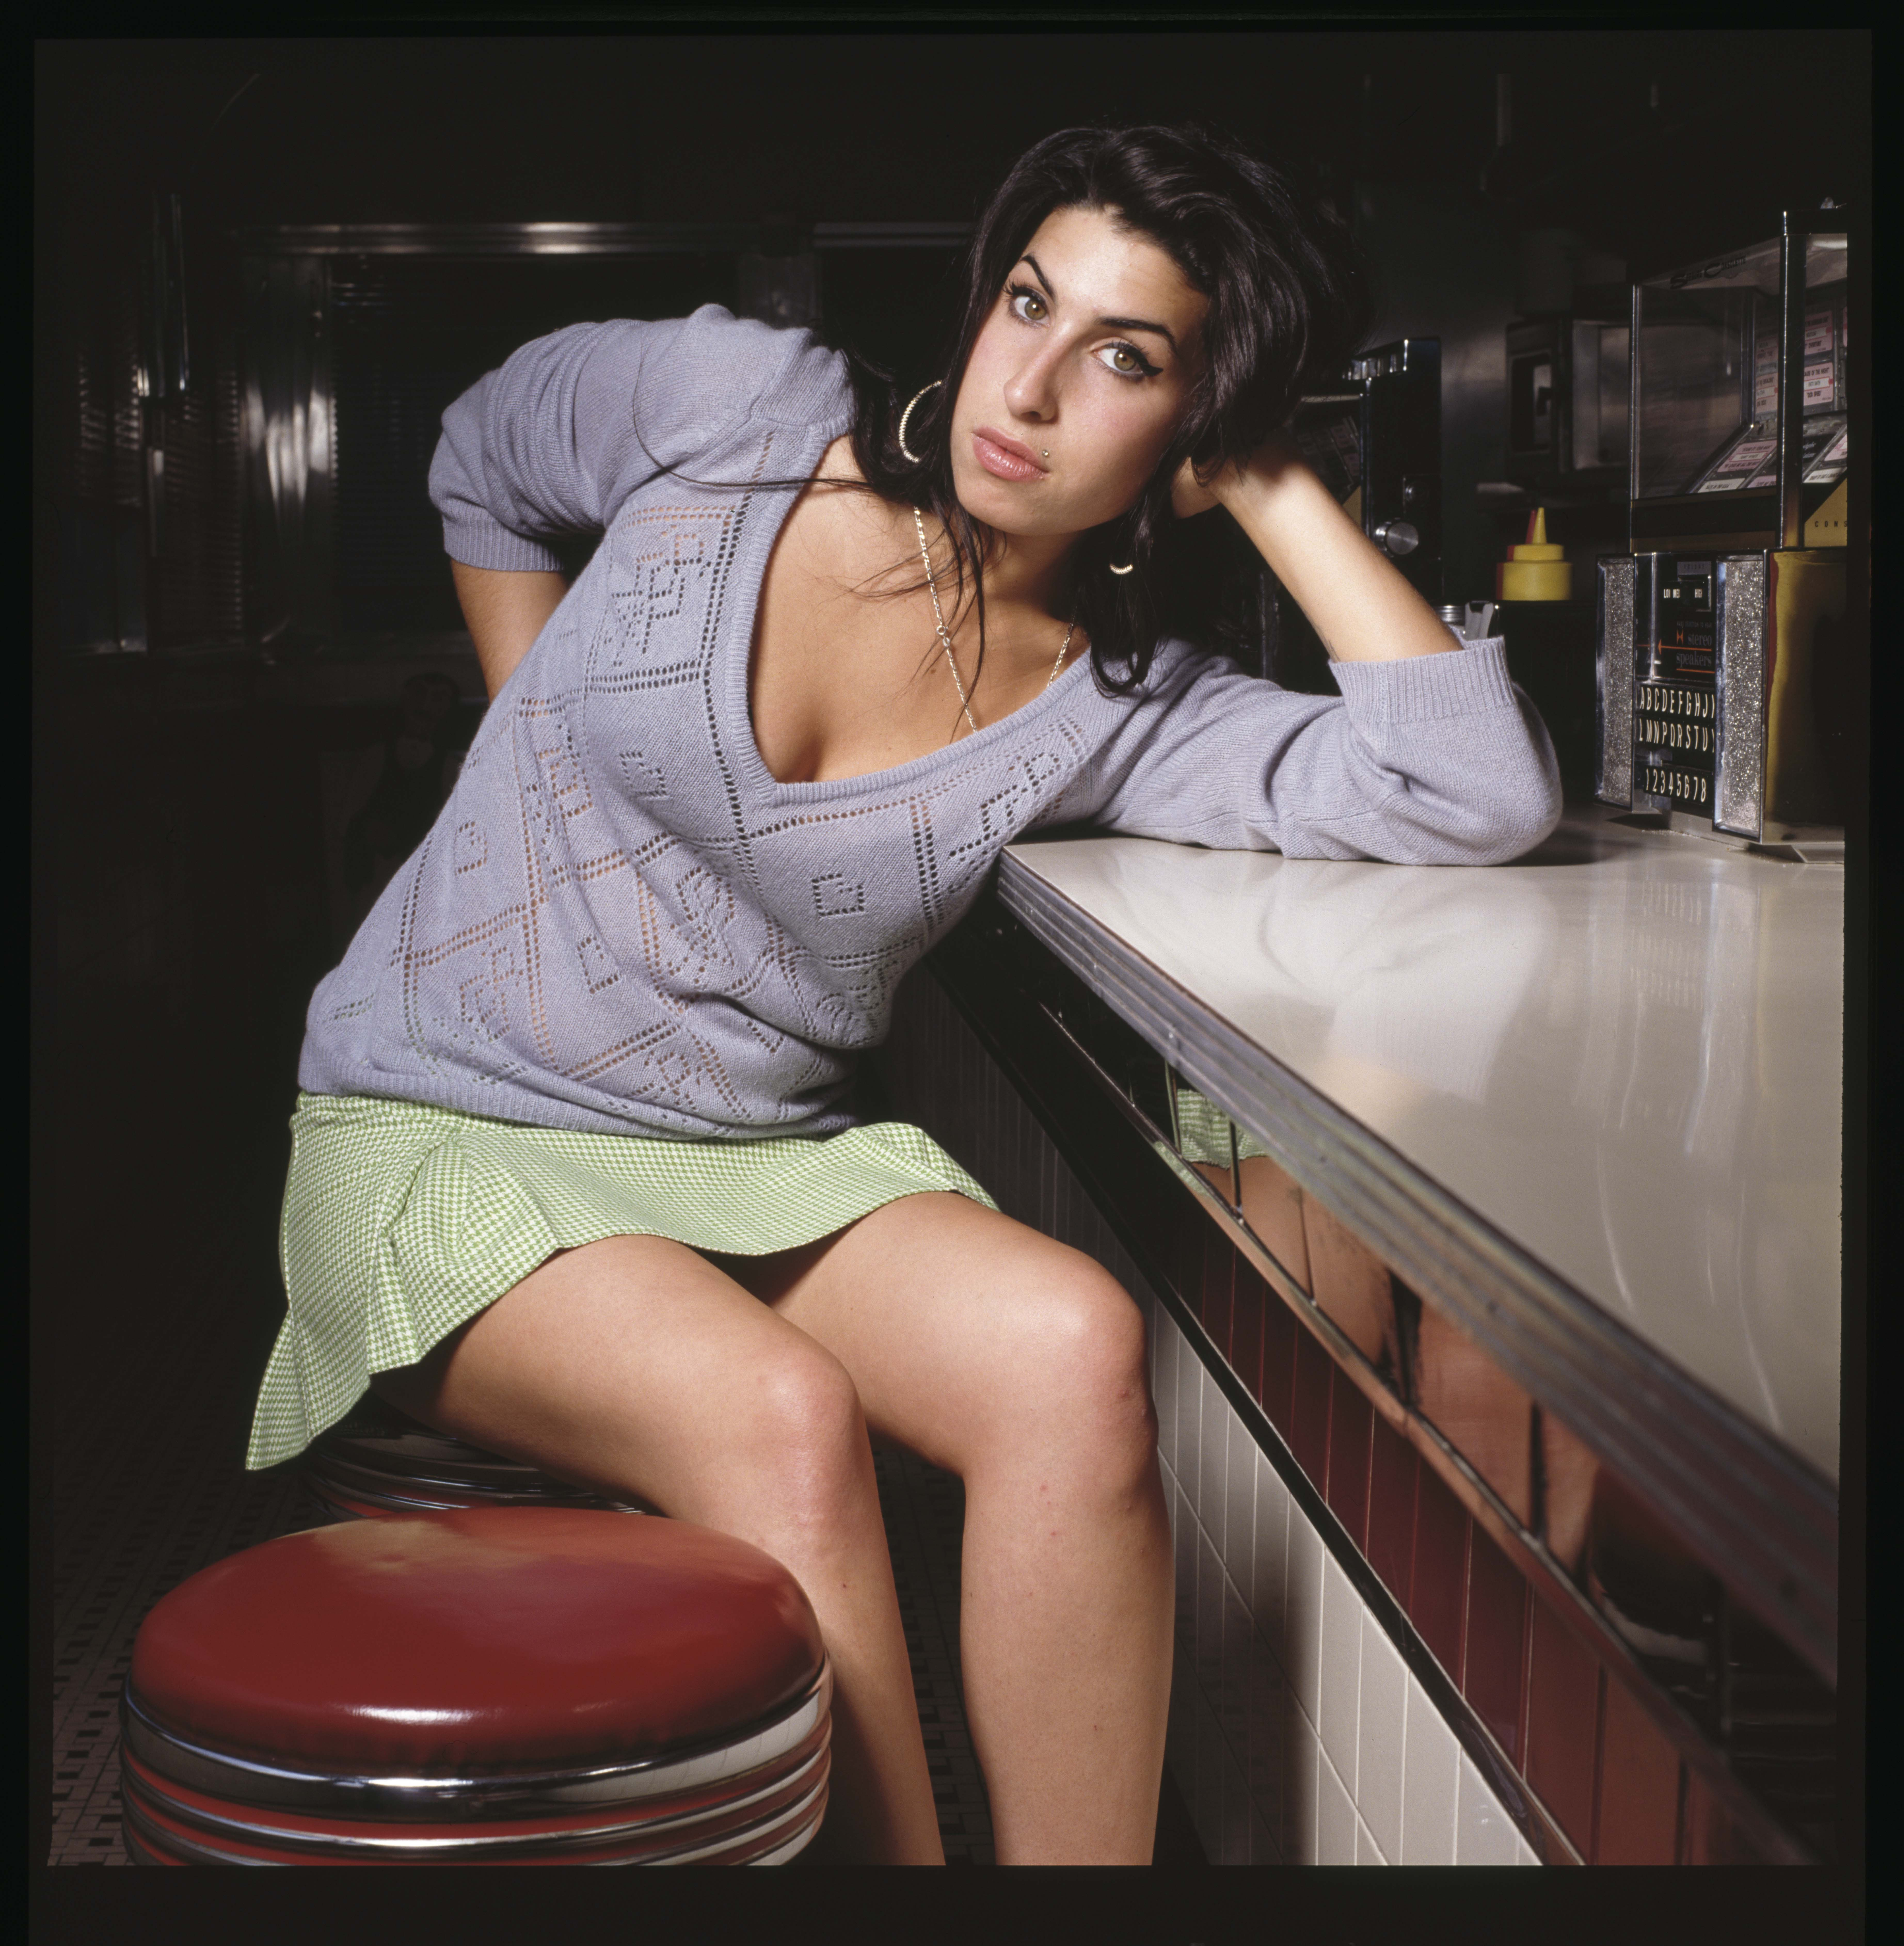 Amy Winehouse leaning against a bar